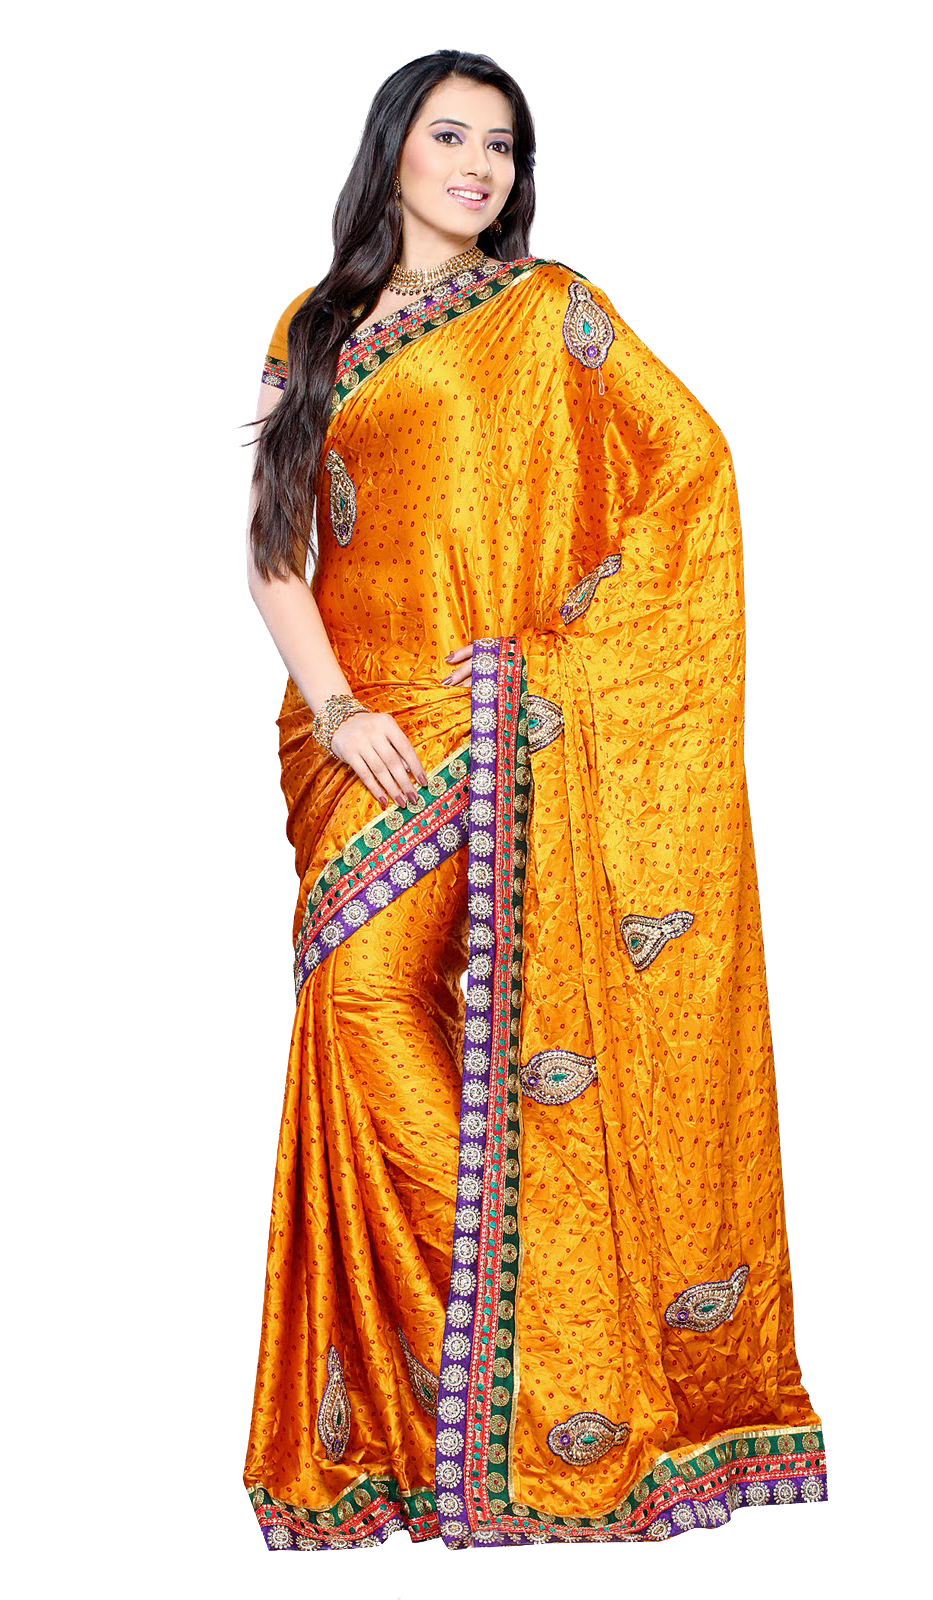 Indian Saree Model Png File By Theartist100 On Deviantart Saree Models Saree Indian Sarees